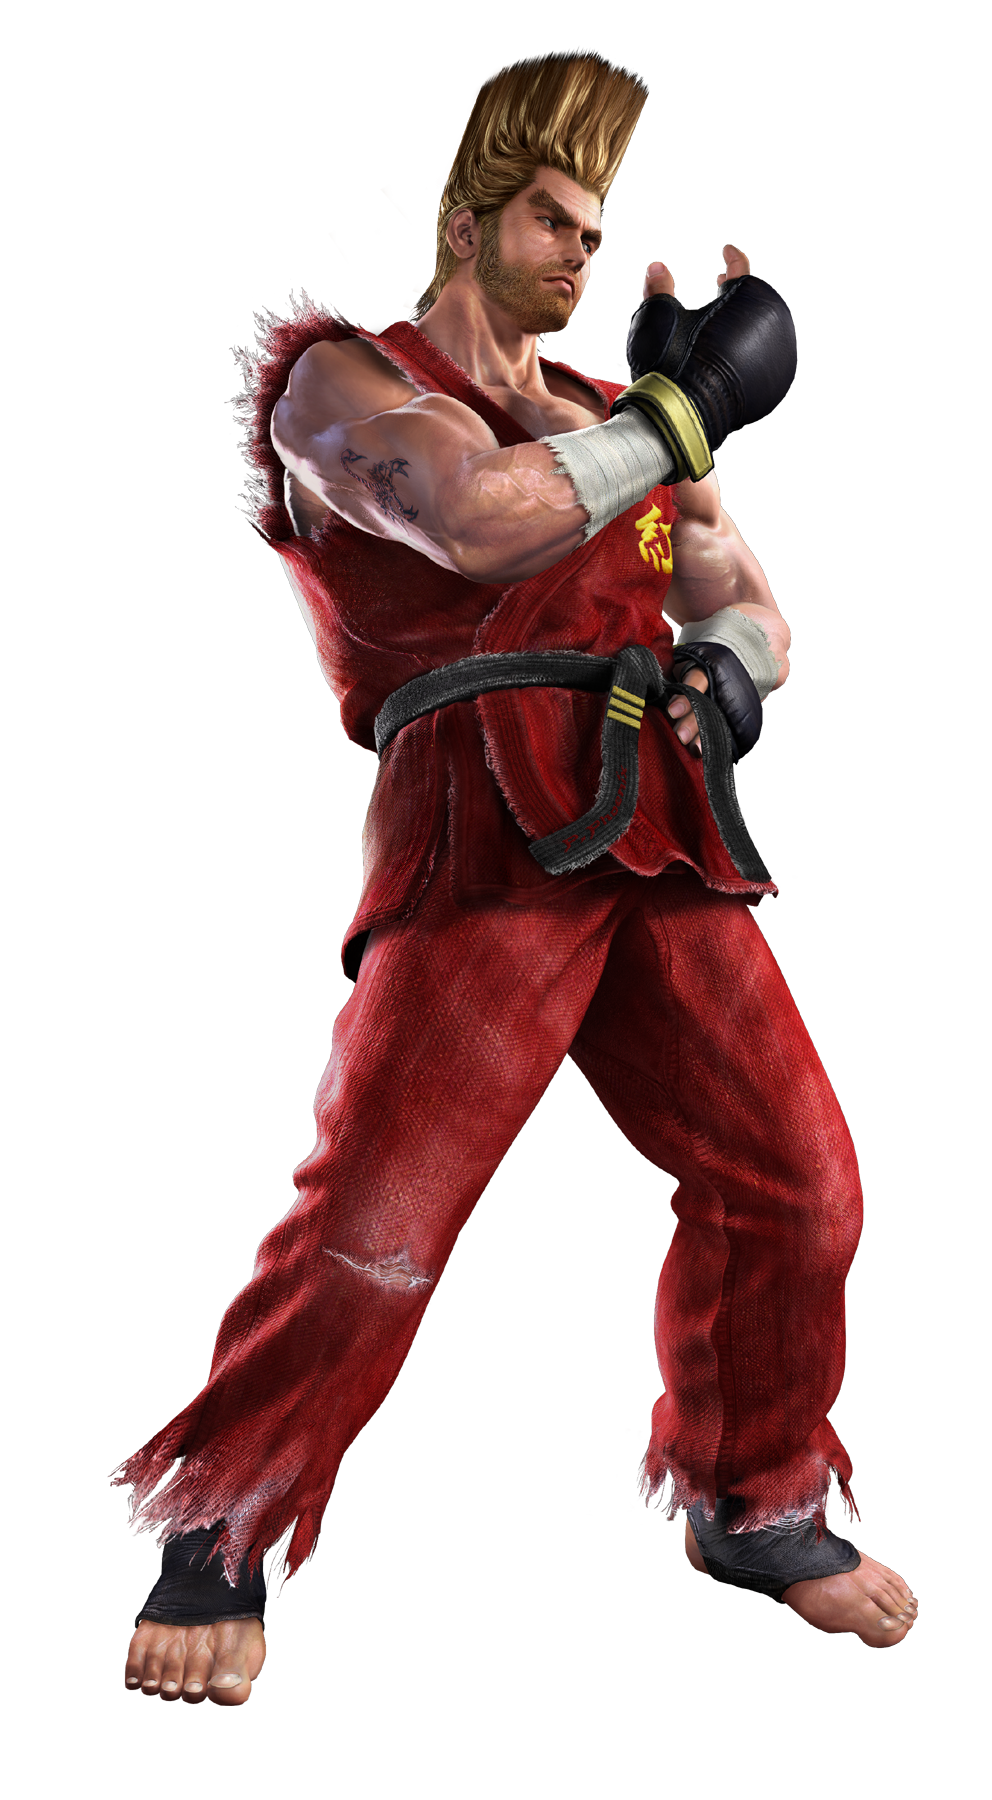 . PlusPng.com file size: 1.62 MB, MIME type: image/png) - Tekken PNG